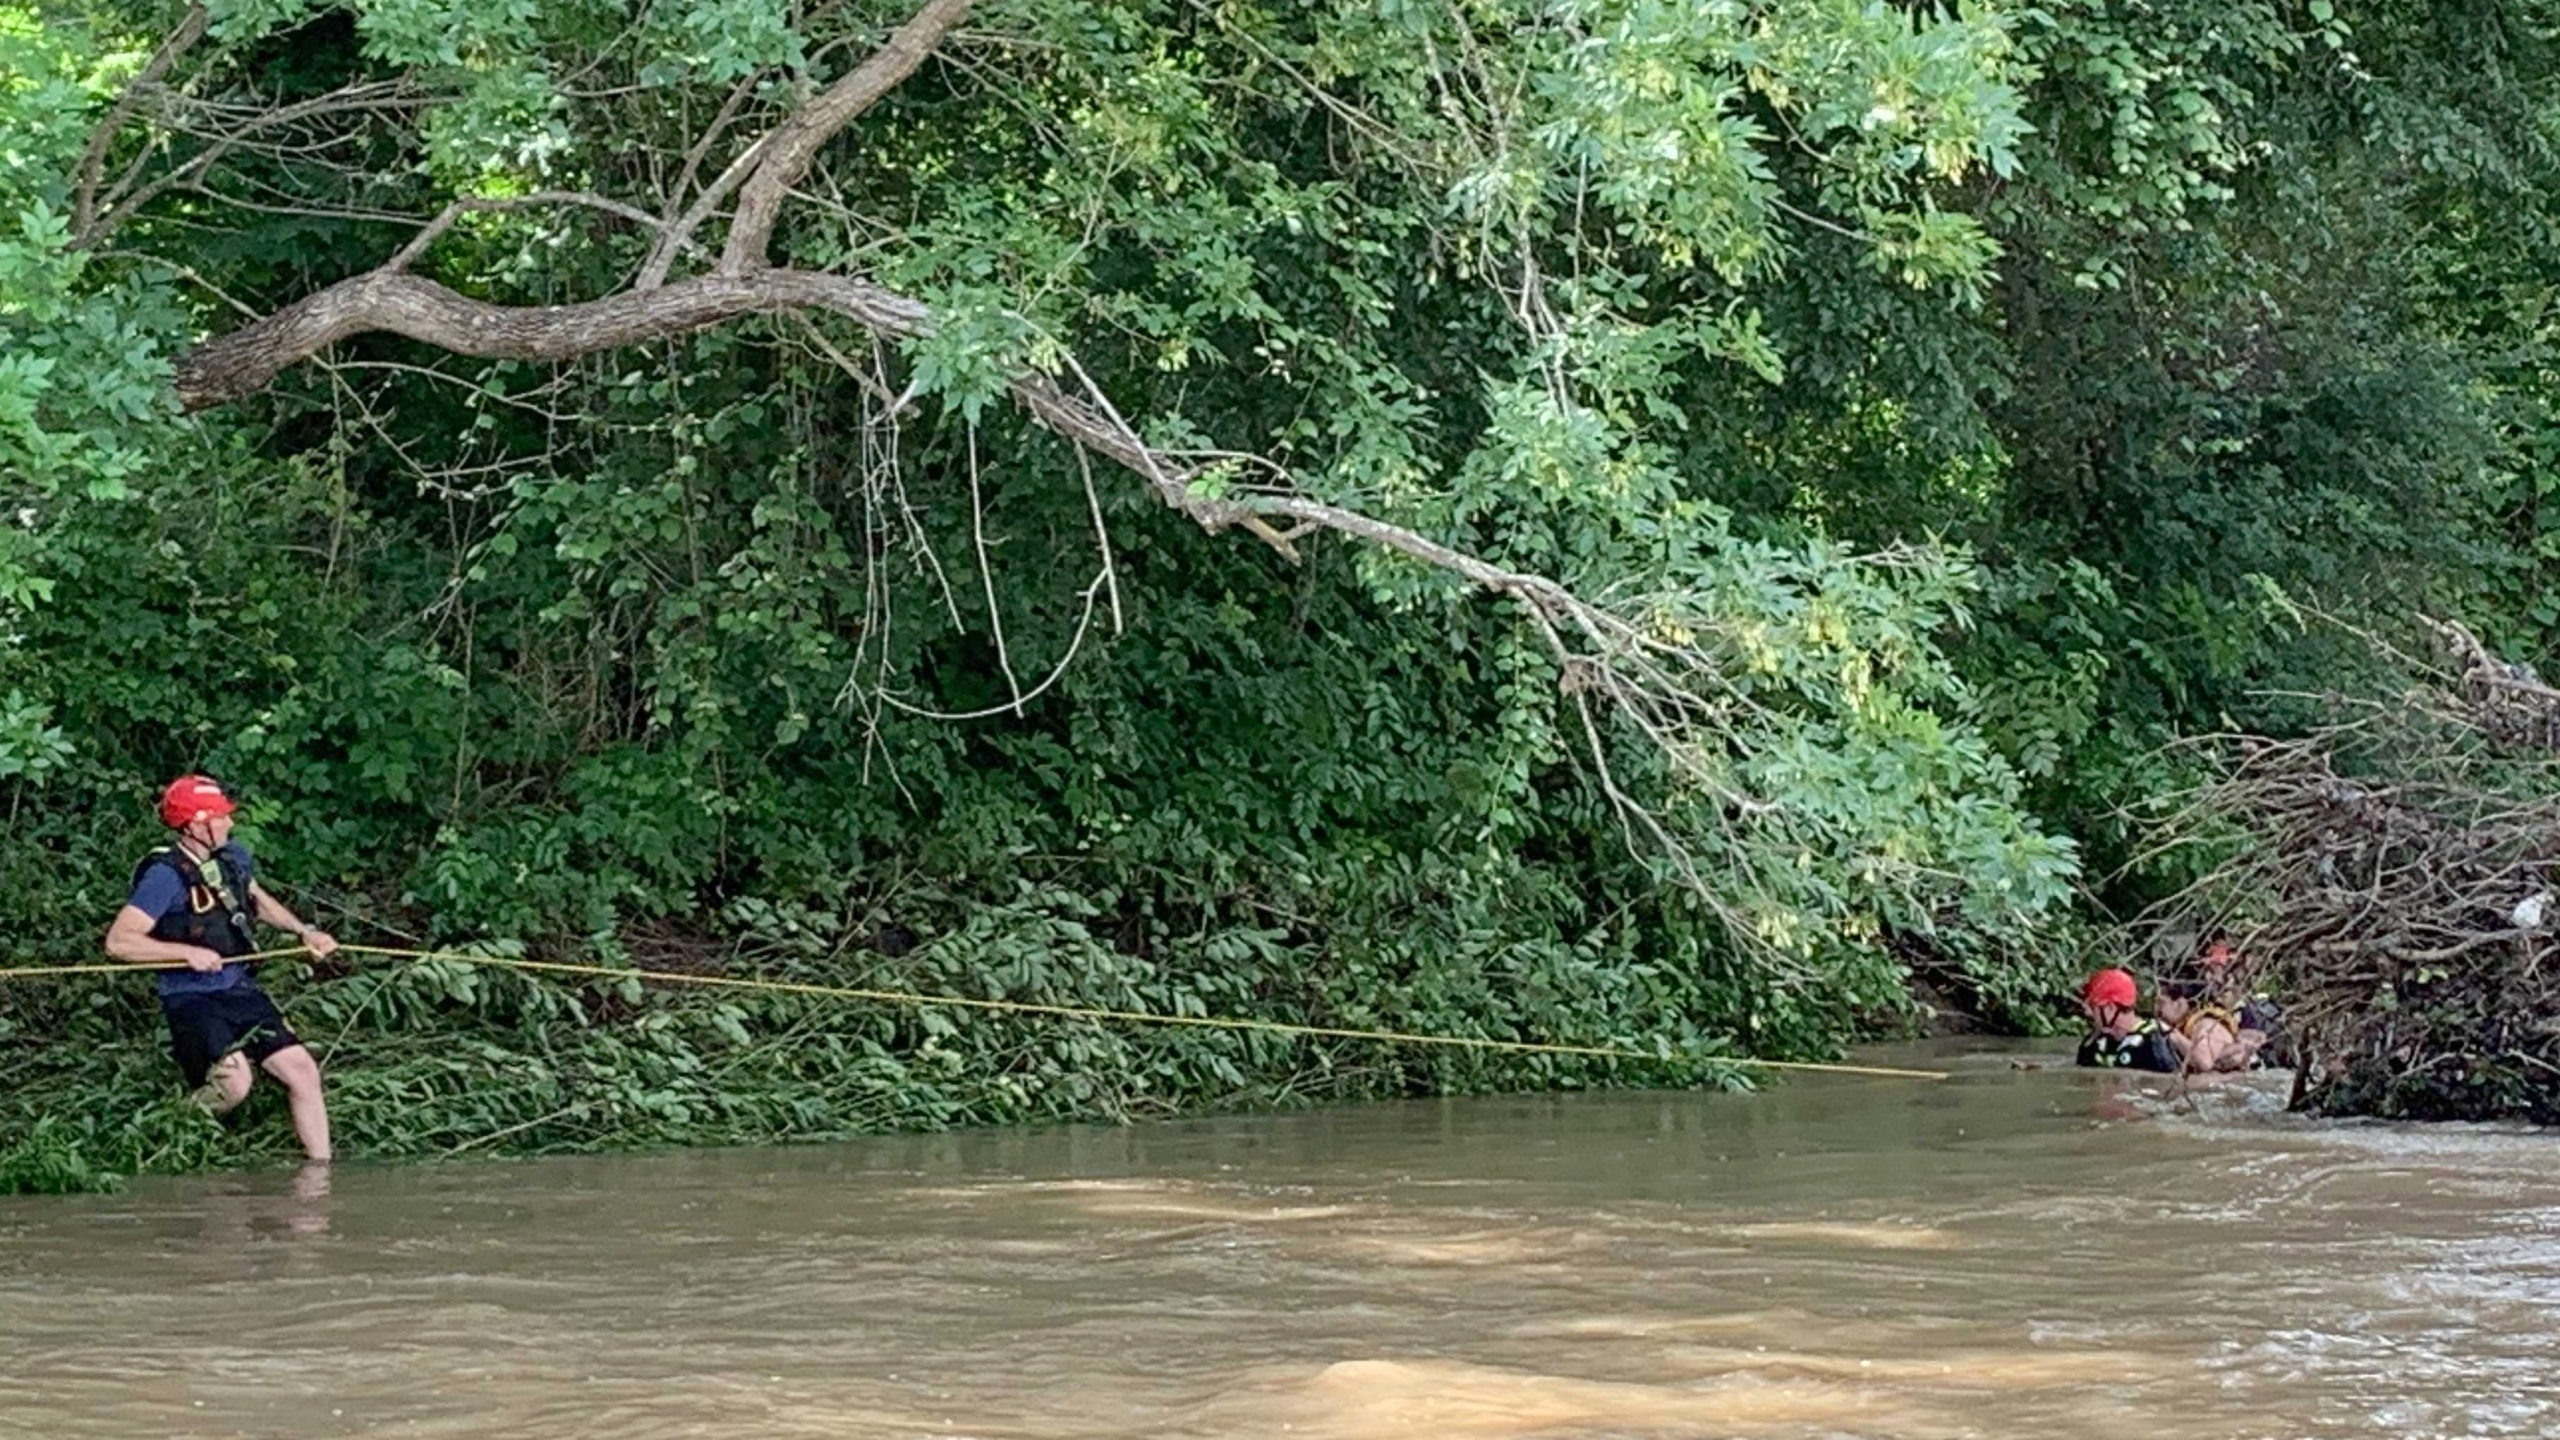 """Emergency crews are in southeast Austin after reports of an adult """"hanging on to a tree"""" in the middle of the creek, according to Austin-Travis County EMS. The adult is now out of the water and being moved to an ambulance. (Austin Fire Photo)"""